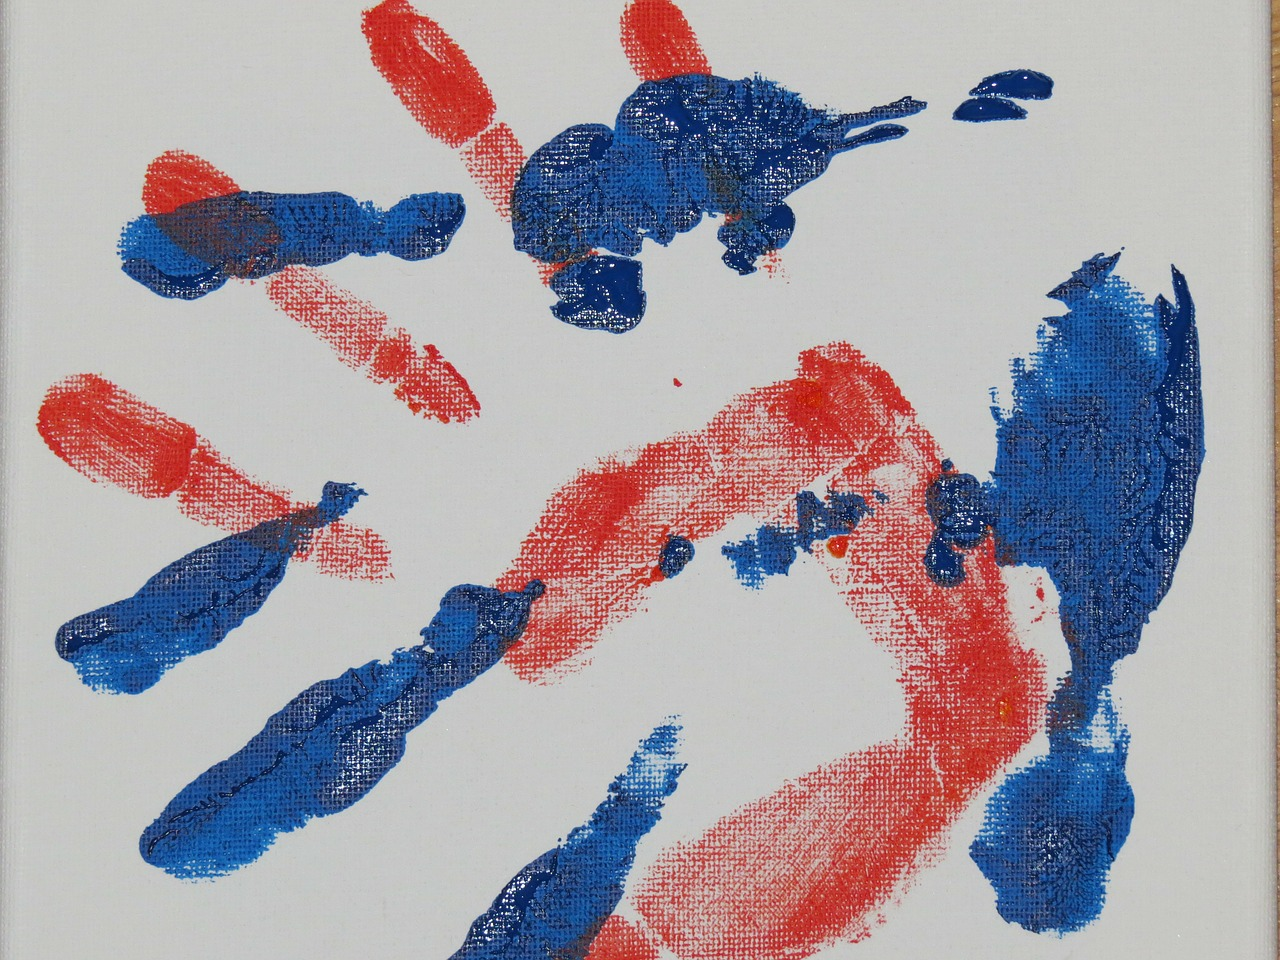 hand,handprint,finger paints,watercolor,reprint,red,blue,children,image,paint,color,colorful,art,paper,free pictures, free photos, free images, royalty free, free illustrations, public domain